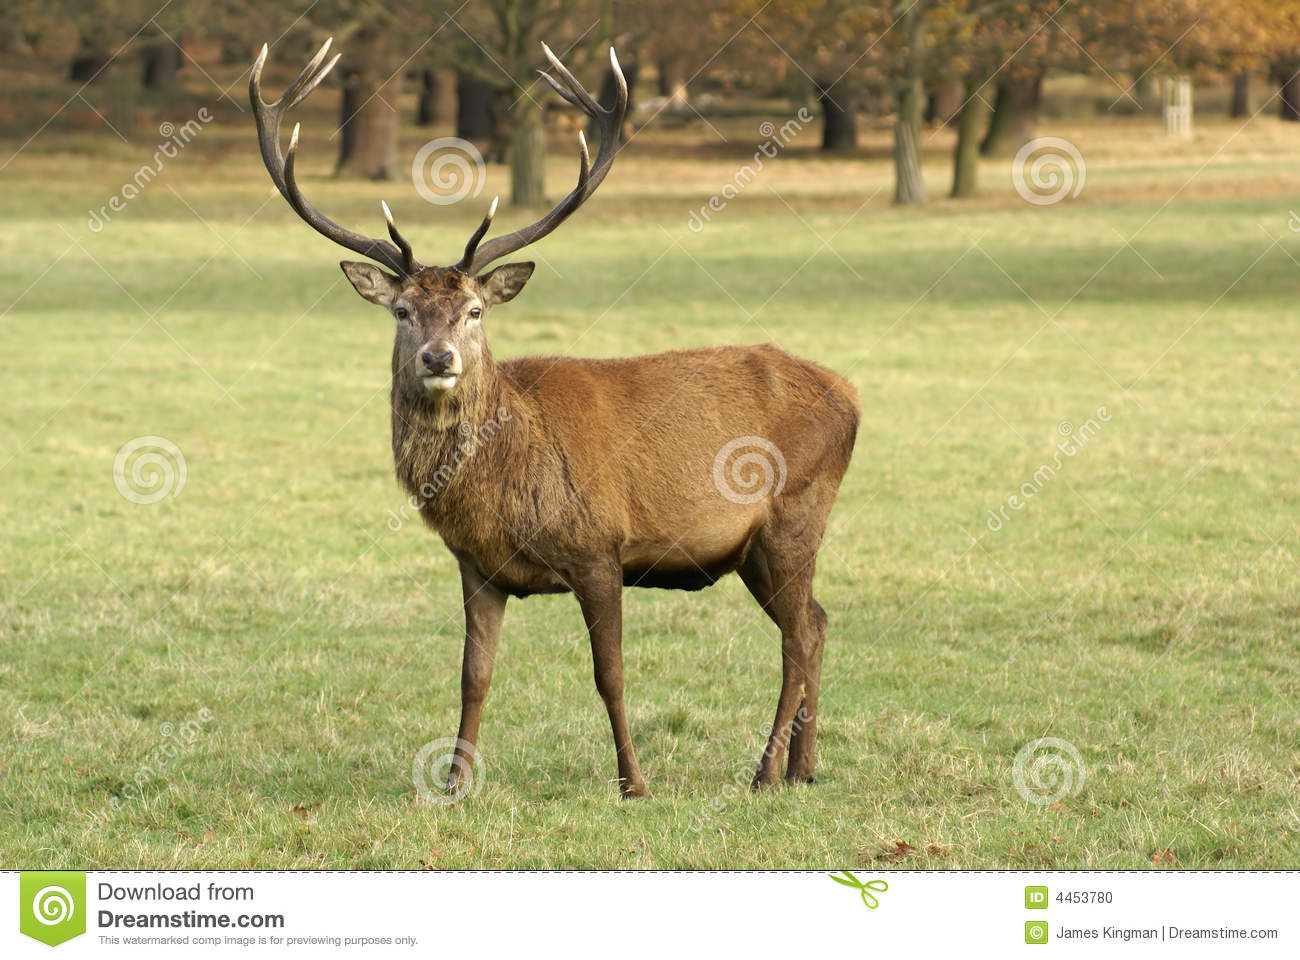 Stag Deer Stock Photo - Image: 4453780